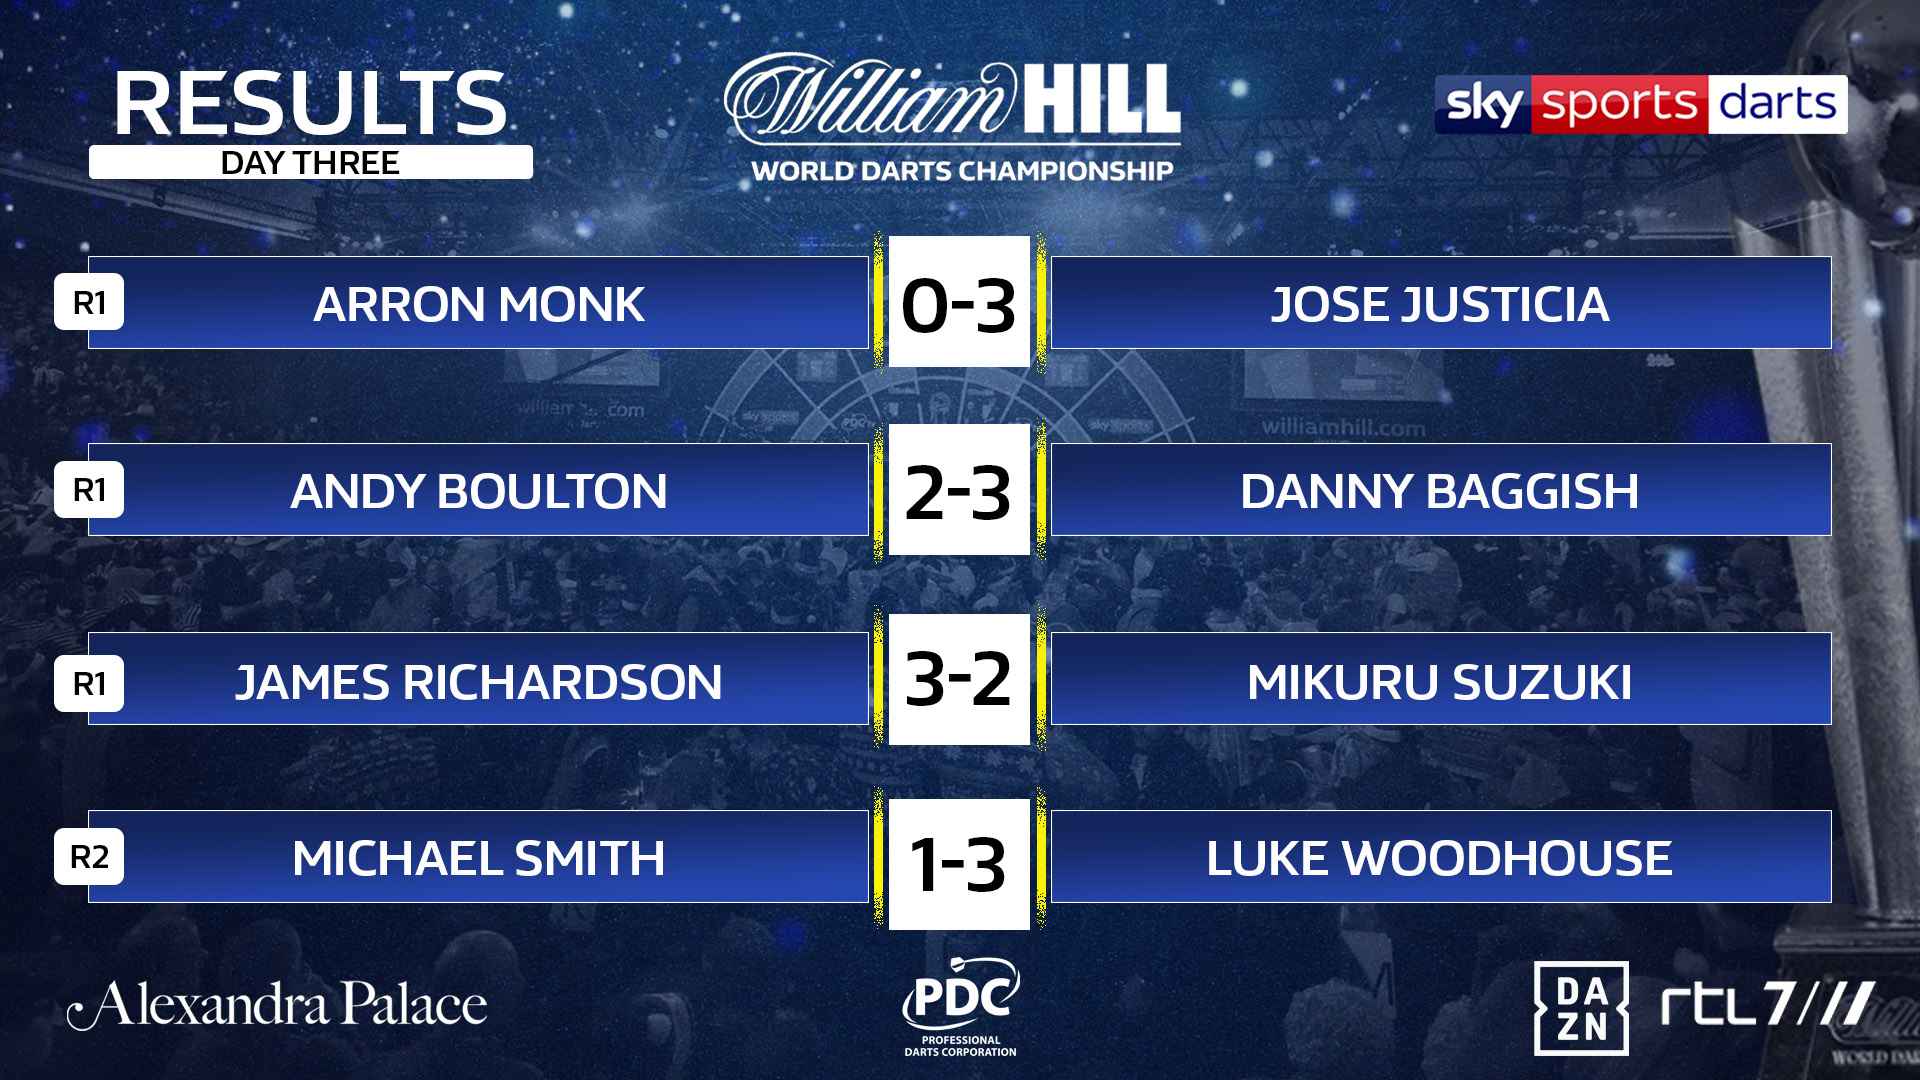 World Championship result (PDC)